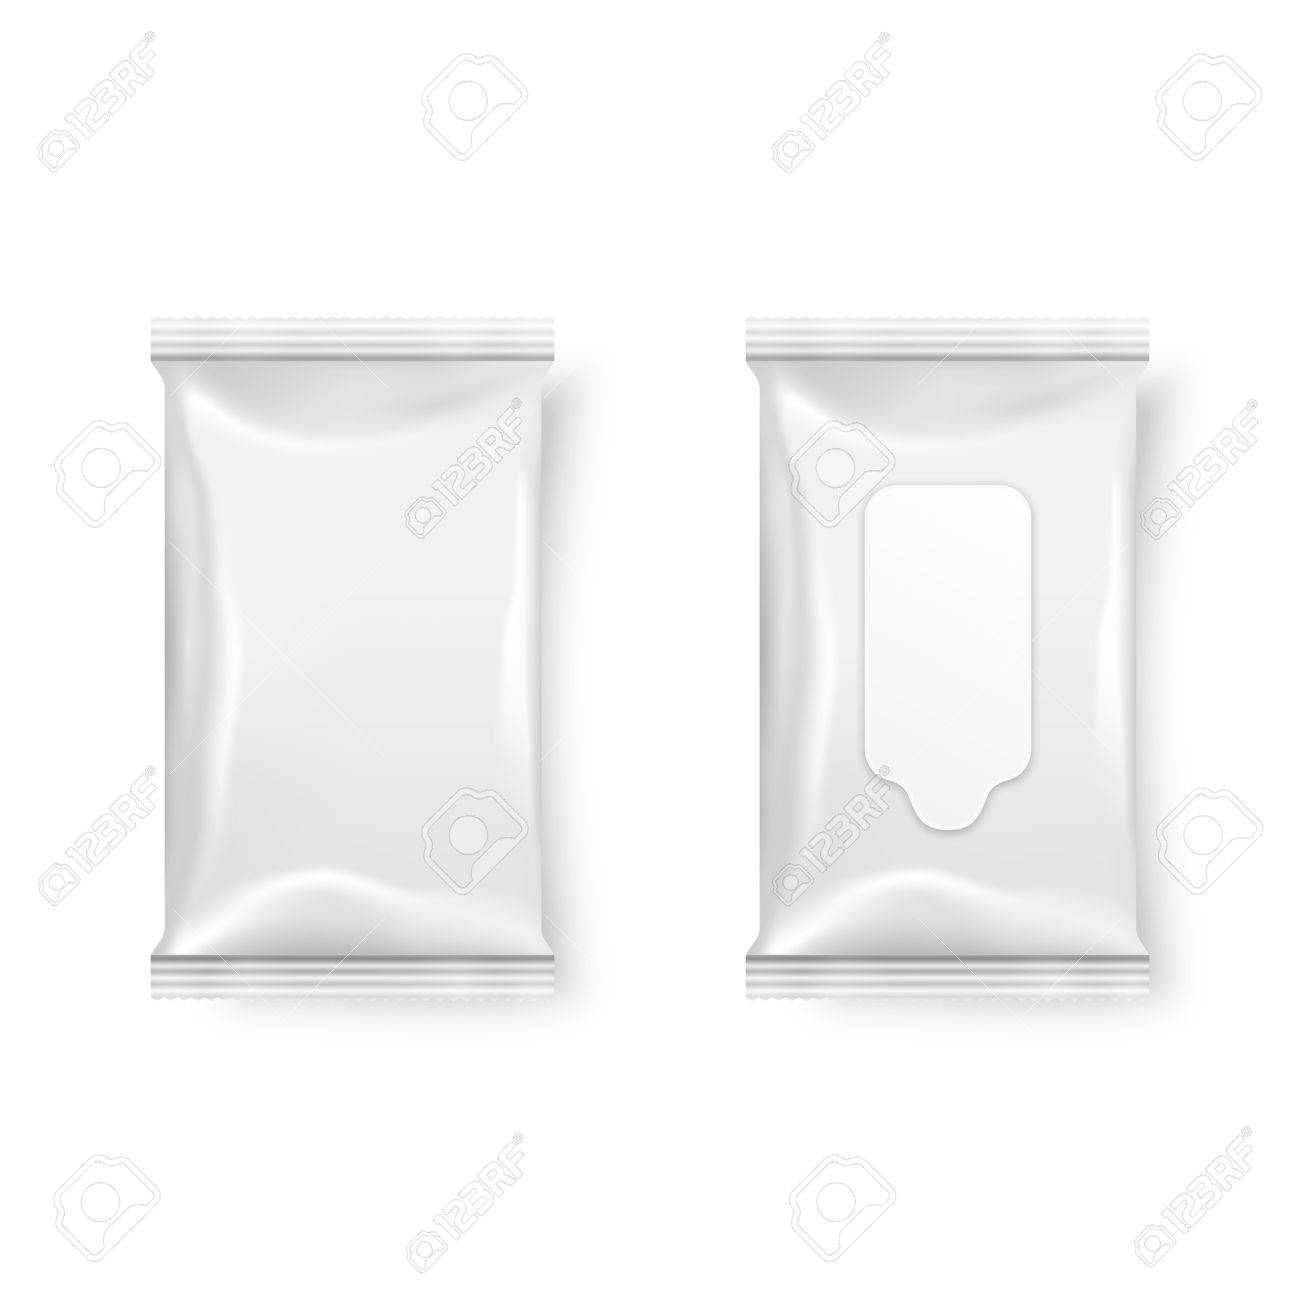 Pack of wet wipes isolated on a white background. Wet wipes set. Wet wipes vector. Wet wipes Art. Wet wipes isolated. Wet wipes Picture.Wet wipes image. Wet wipes logo. Wet wipes design. Wet wipes mockup. Wet wipes vector design. Vector EPS10 illustration - 58045665